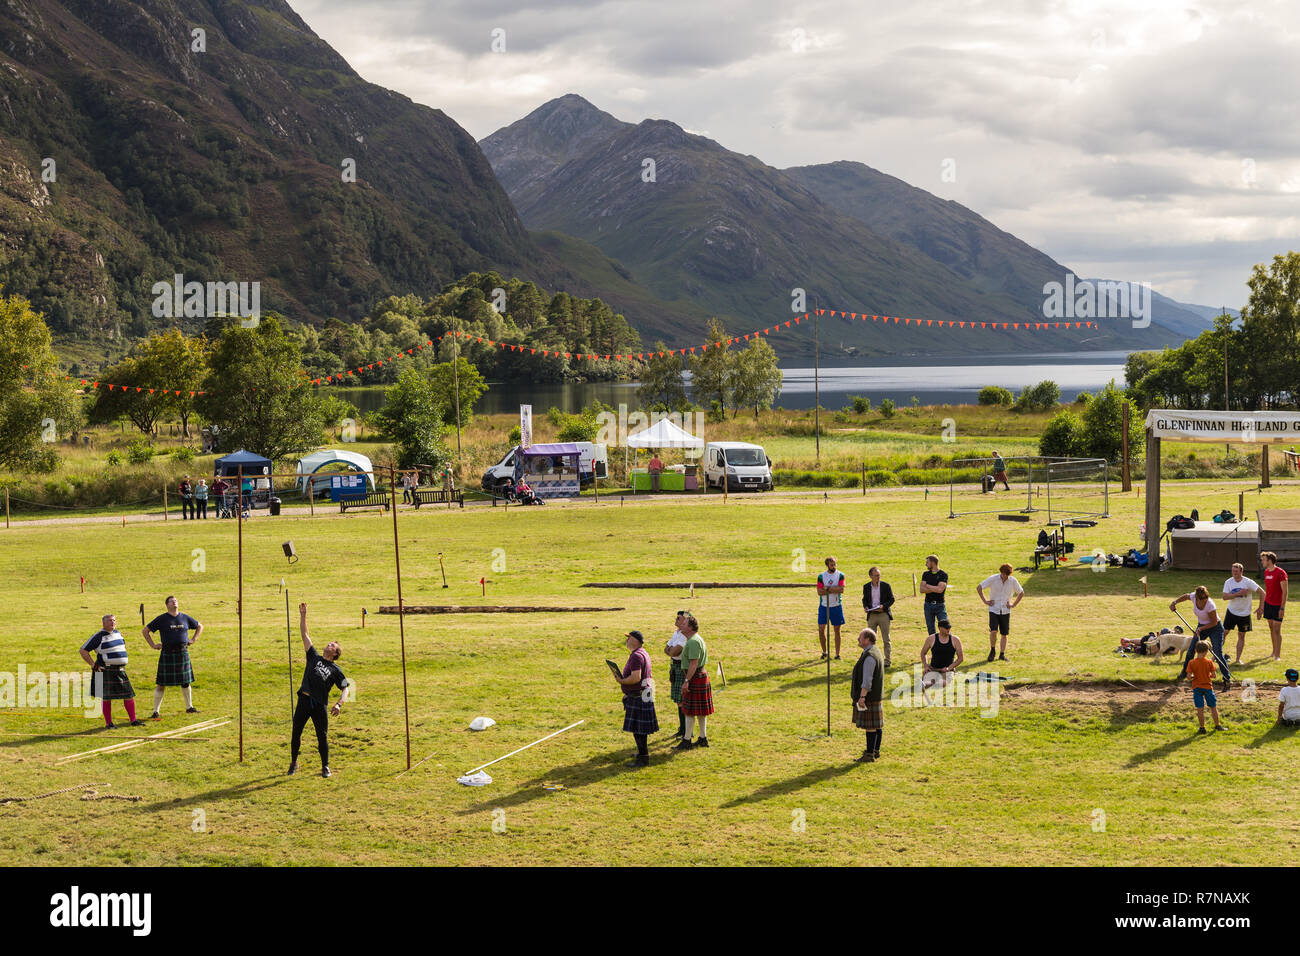 Glenfinnan Highland Games. A 'weight over the bar', or 'weight throw for height', competition is taking place. - Stock Image